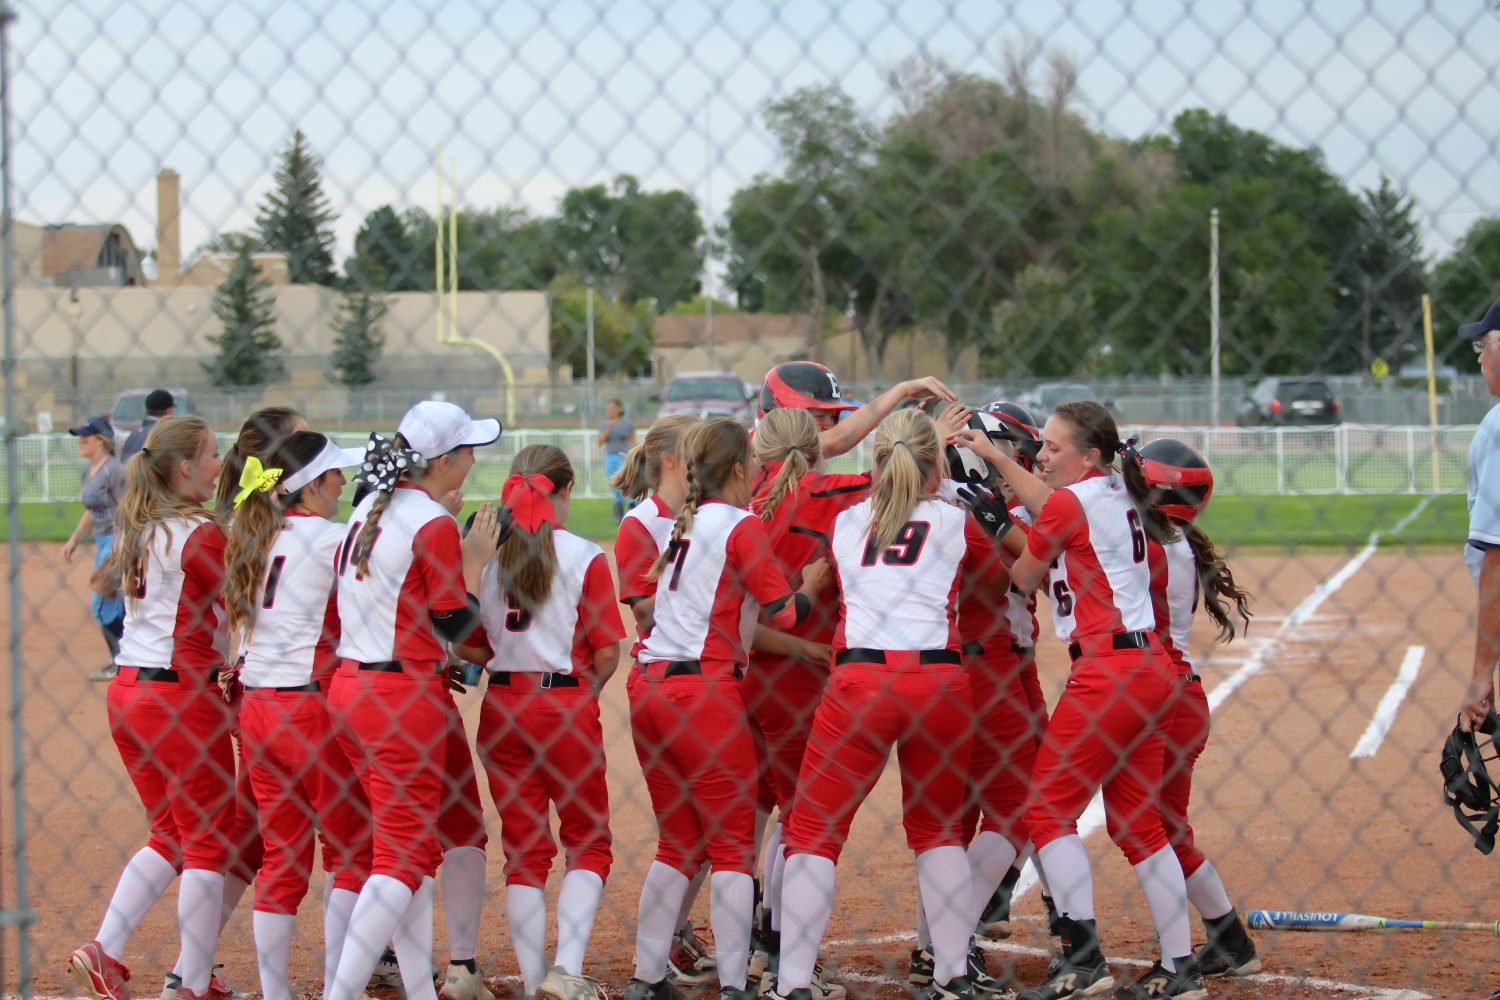 Reds lose in the semifinals at state tournament